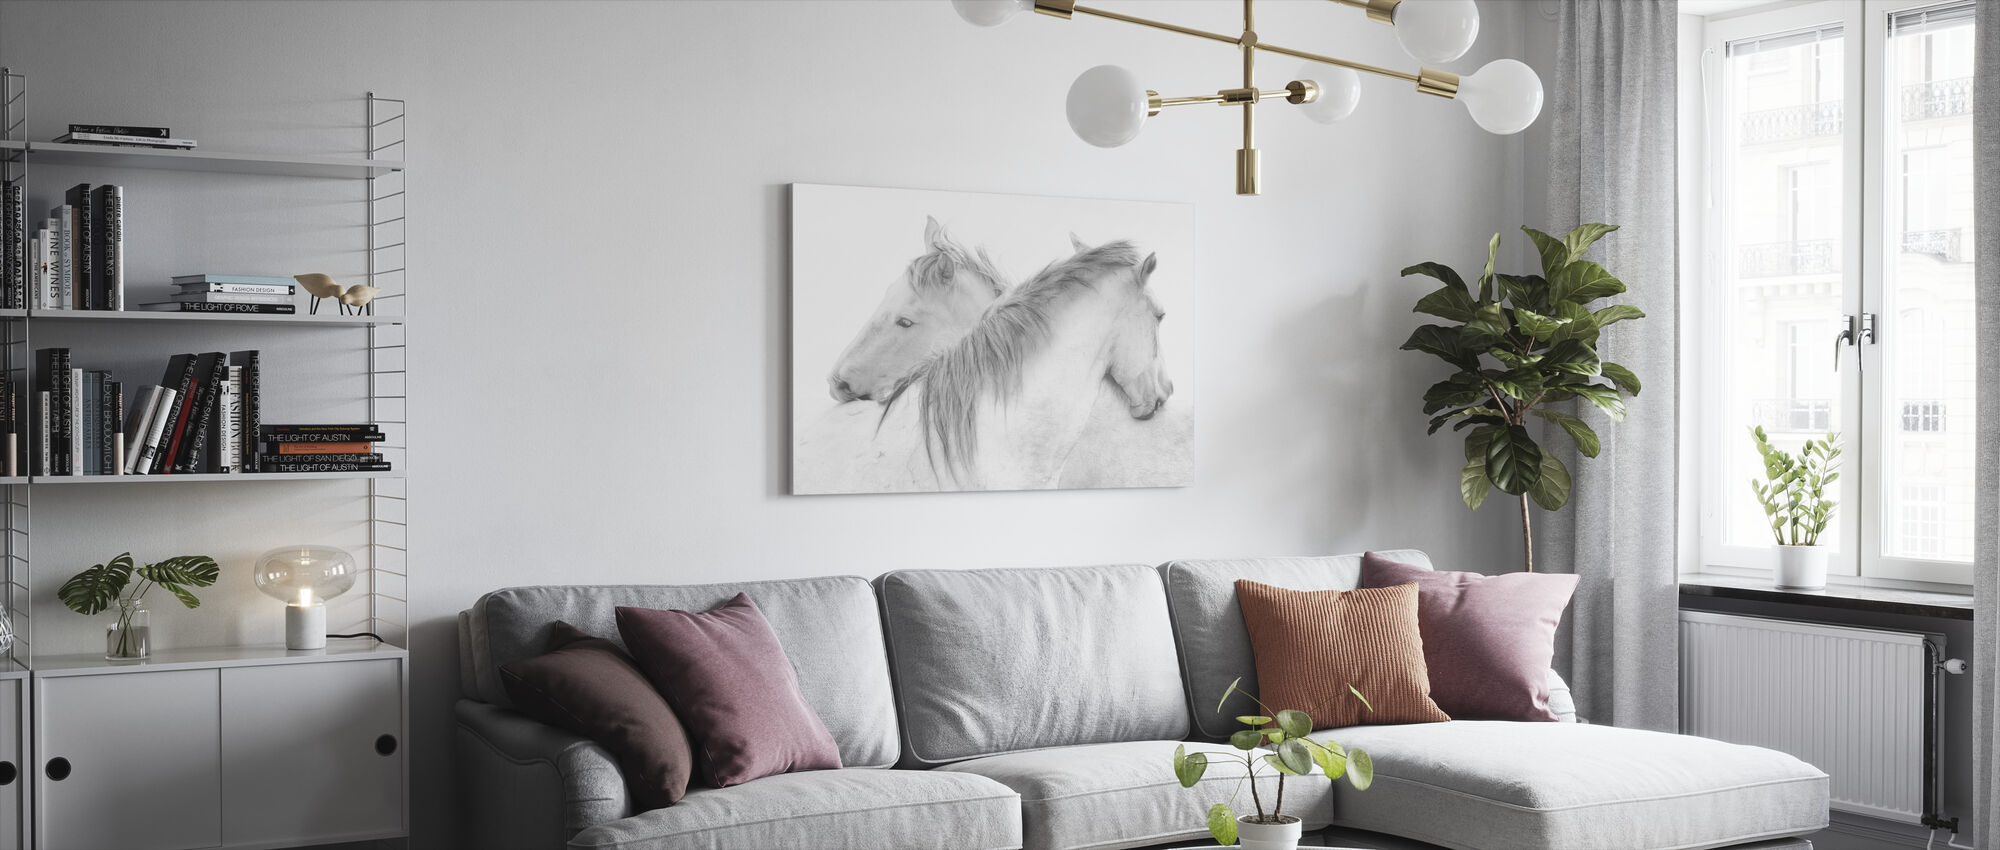 Horses - Canvas print - Living Room